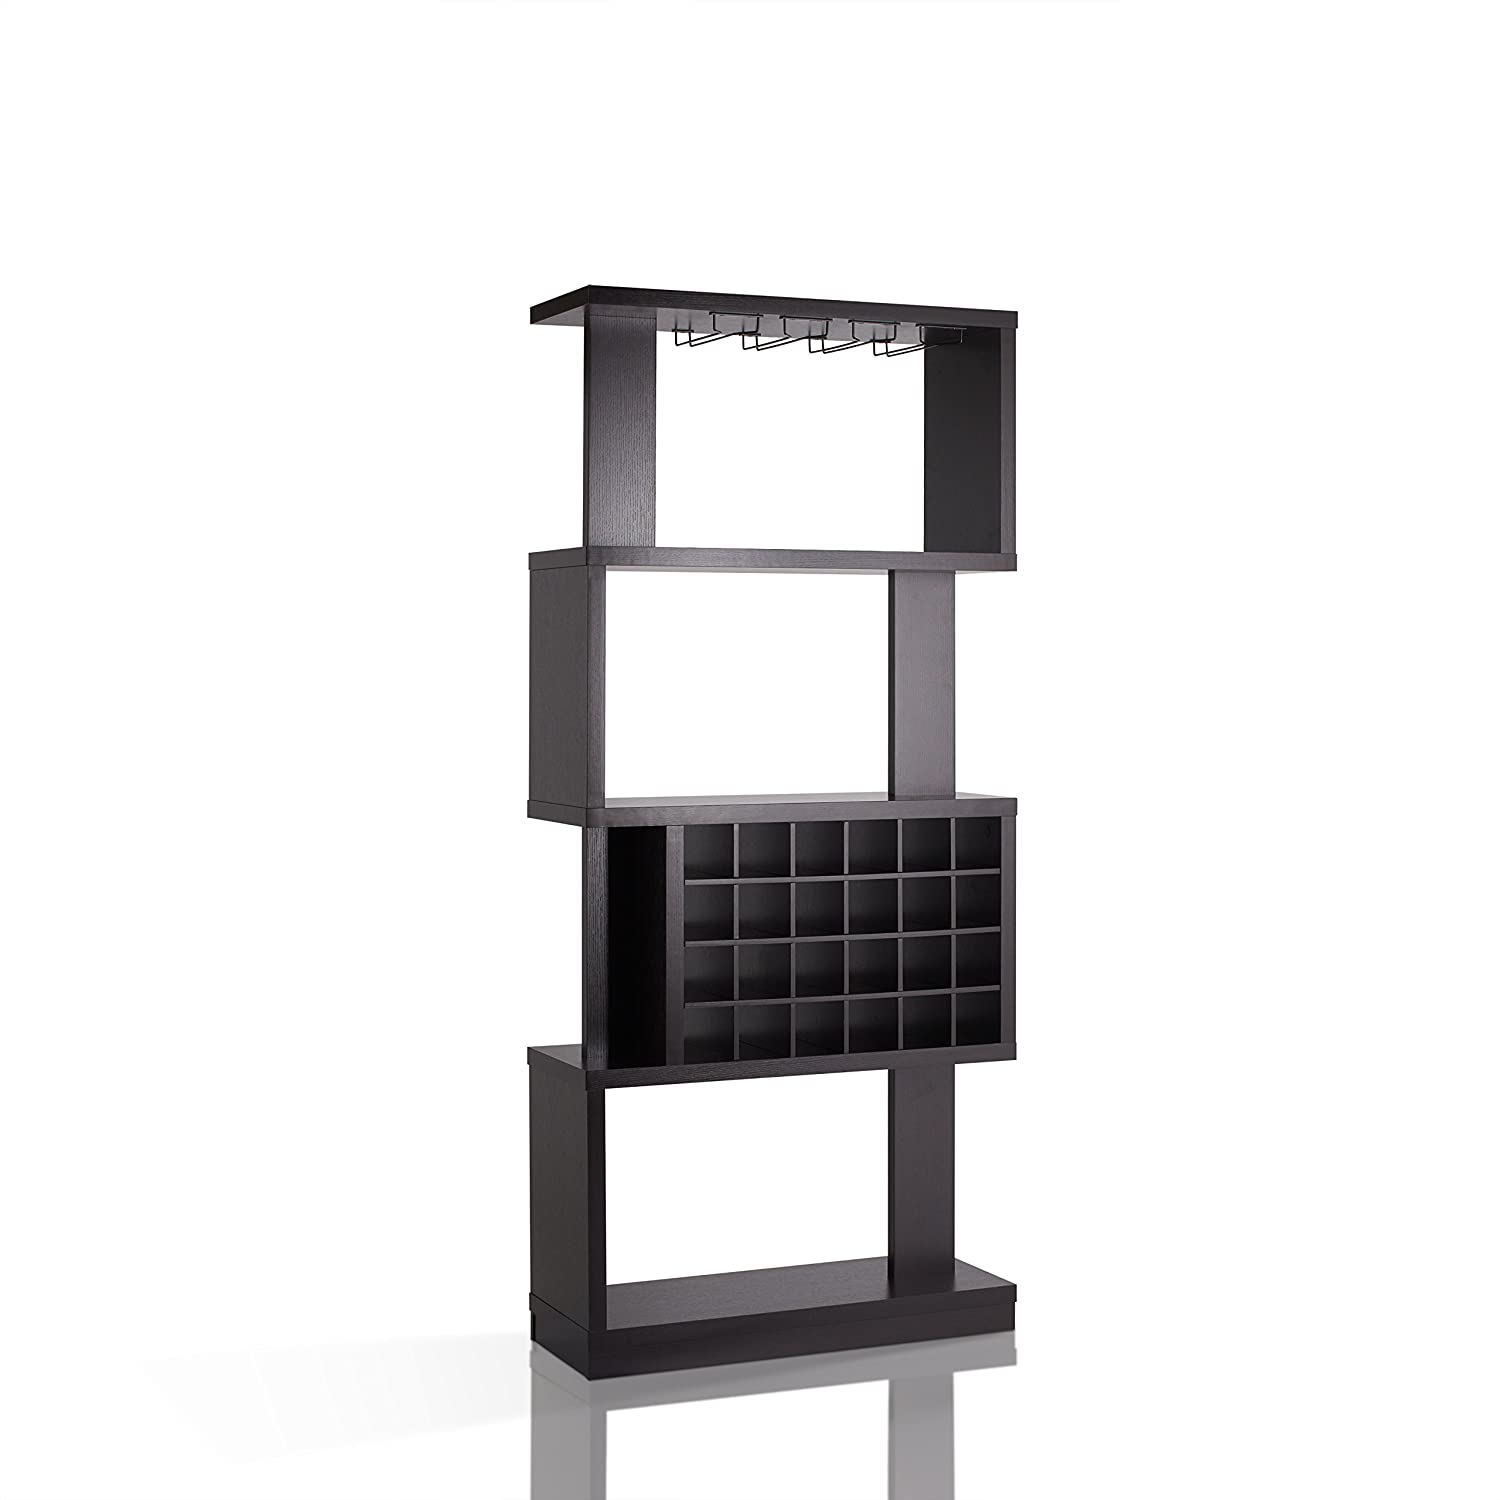 HOMES: Inside + Out IDI-14989 Cappuccino Contemporary Larson Wine Stand Furniture of America